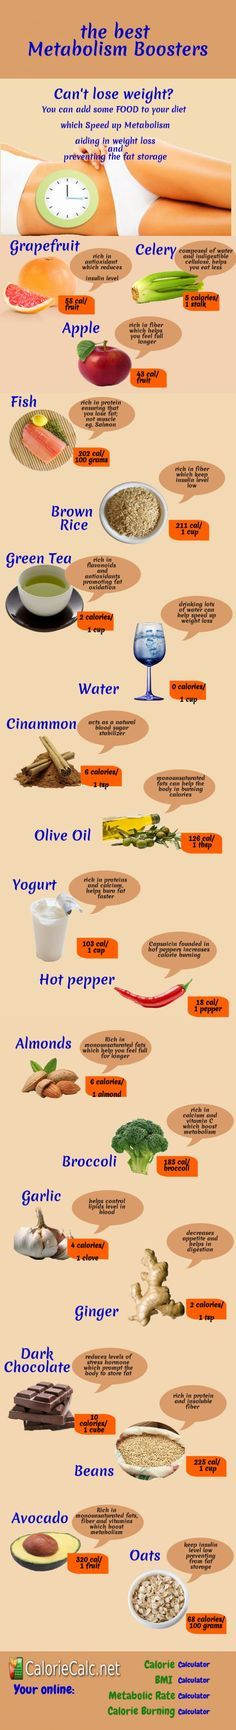 Some food can boost metabolism prevent the fat storage and help you lose or maintain weight.: Diet Metabolism Boosters Weight Loss Increase Metabolism Metabolism Boosting Foods Weightloss Healthy Food Weights Loss Metabolism Infographics by Muna. Best Metabolism Booster, Foods That Increase Metabolism, Metabolism Boosting Foods, Metabolism Supplements, Get Healthy, Healthy Tips, Healthy Choices, Healthy Weight, Healthy Foods